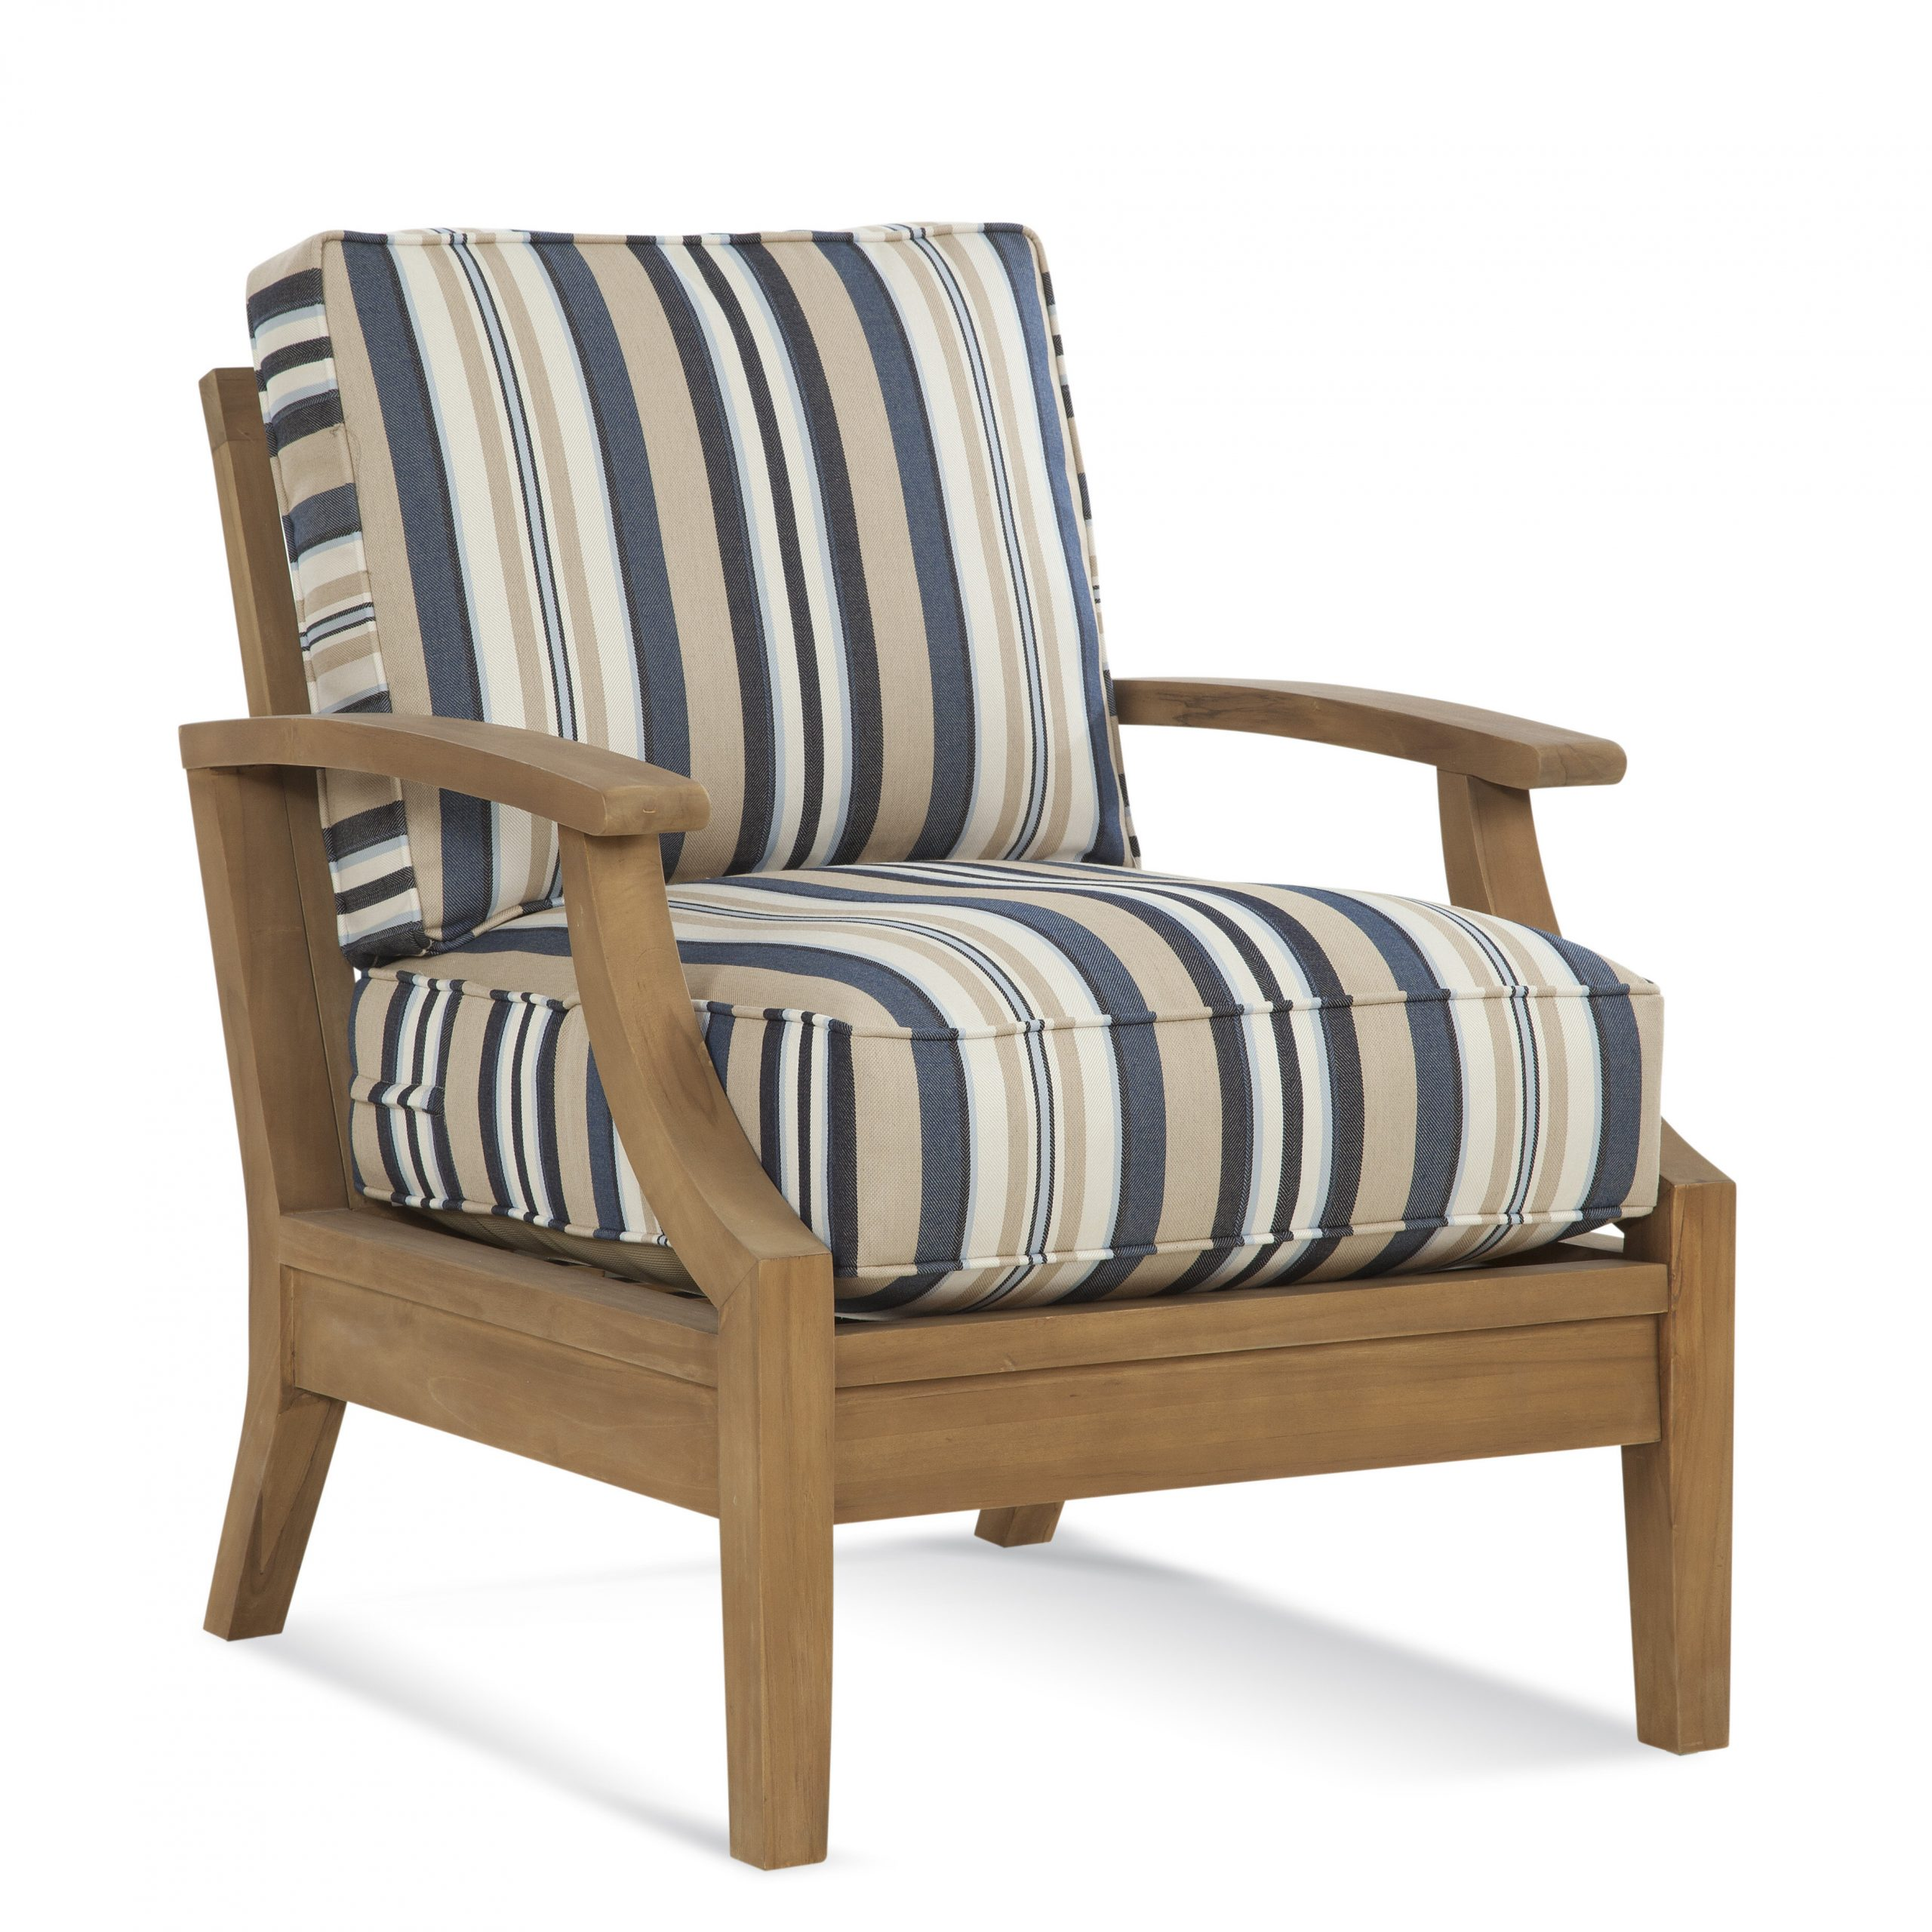 Messina Teak Patio Chair With Cushions For Messina Garden Stools Set (Set Of 2) (View 16 of 25)